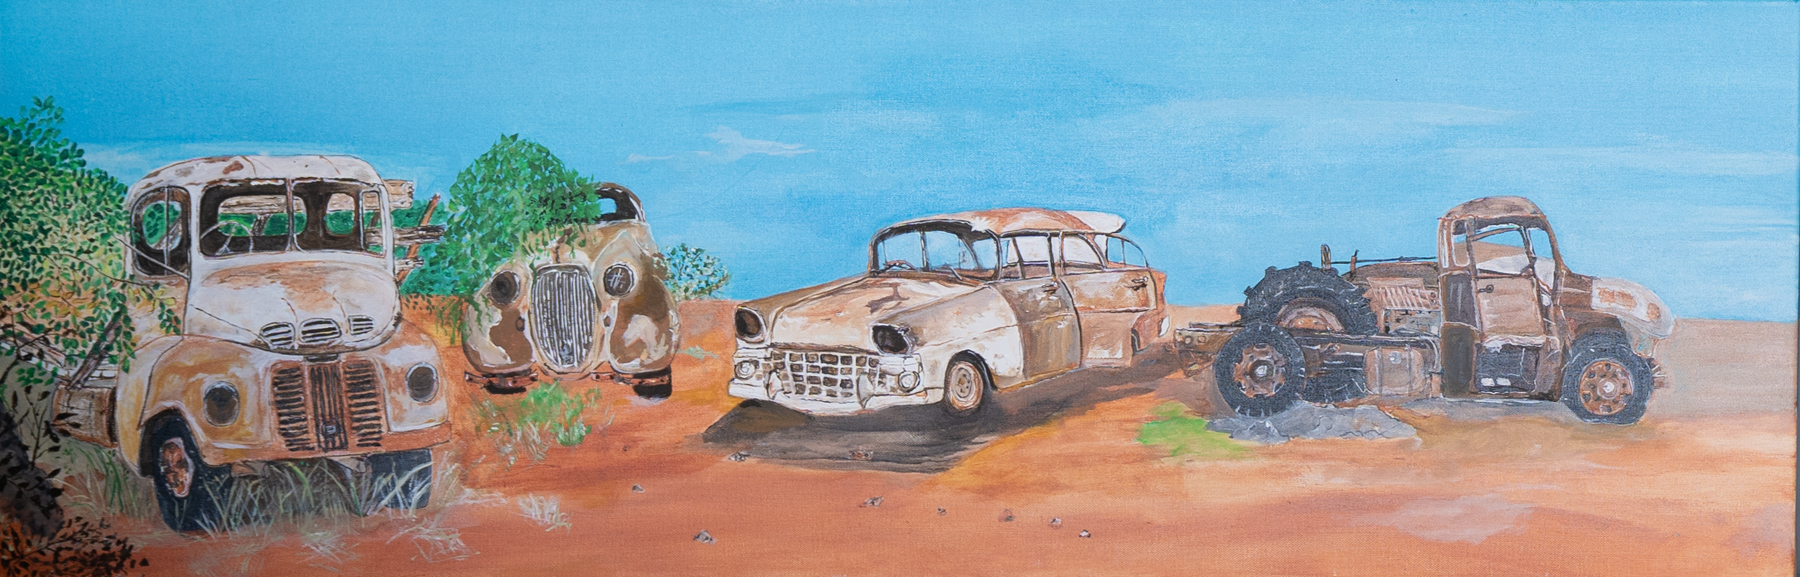 Painting of rusty cars under a blue sky